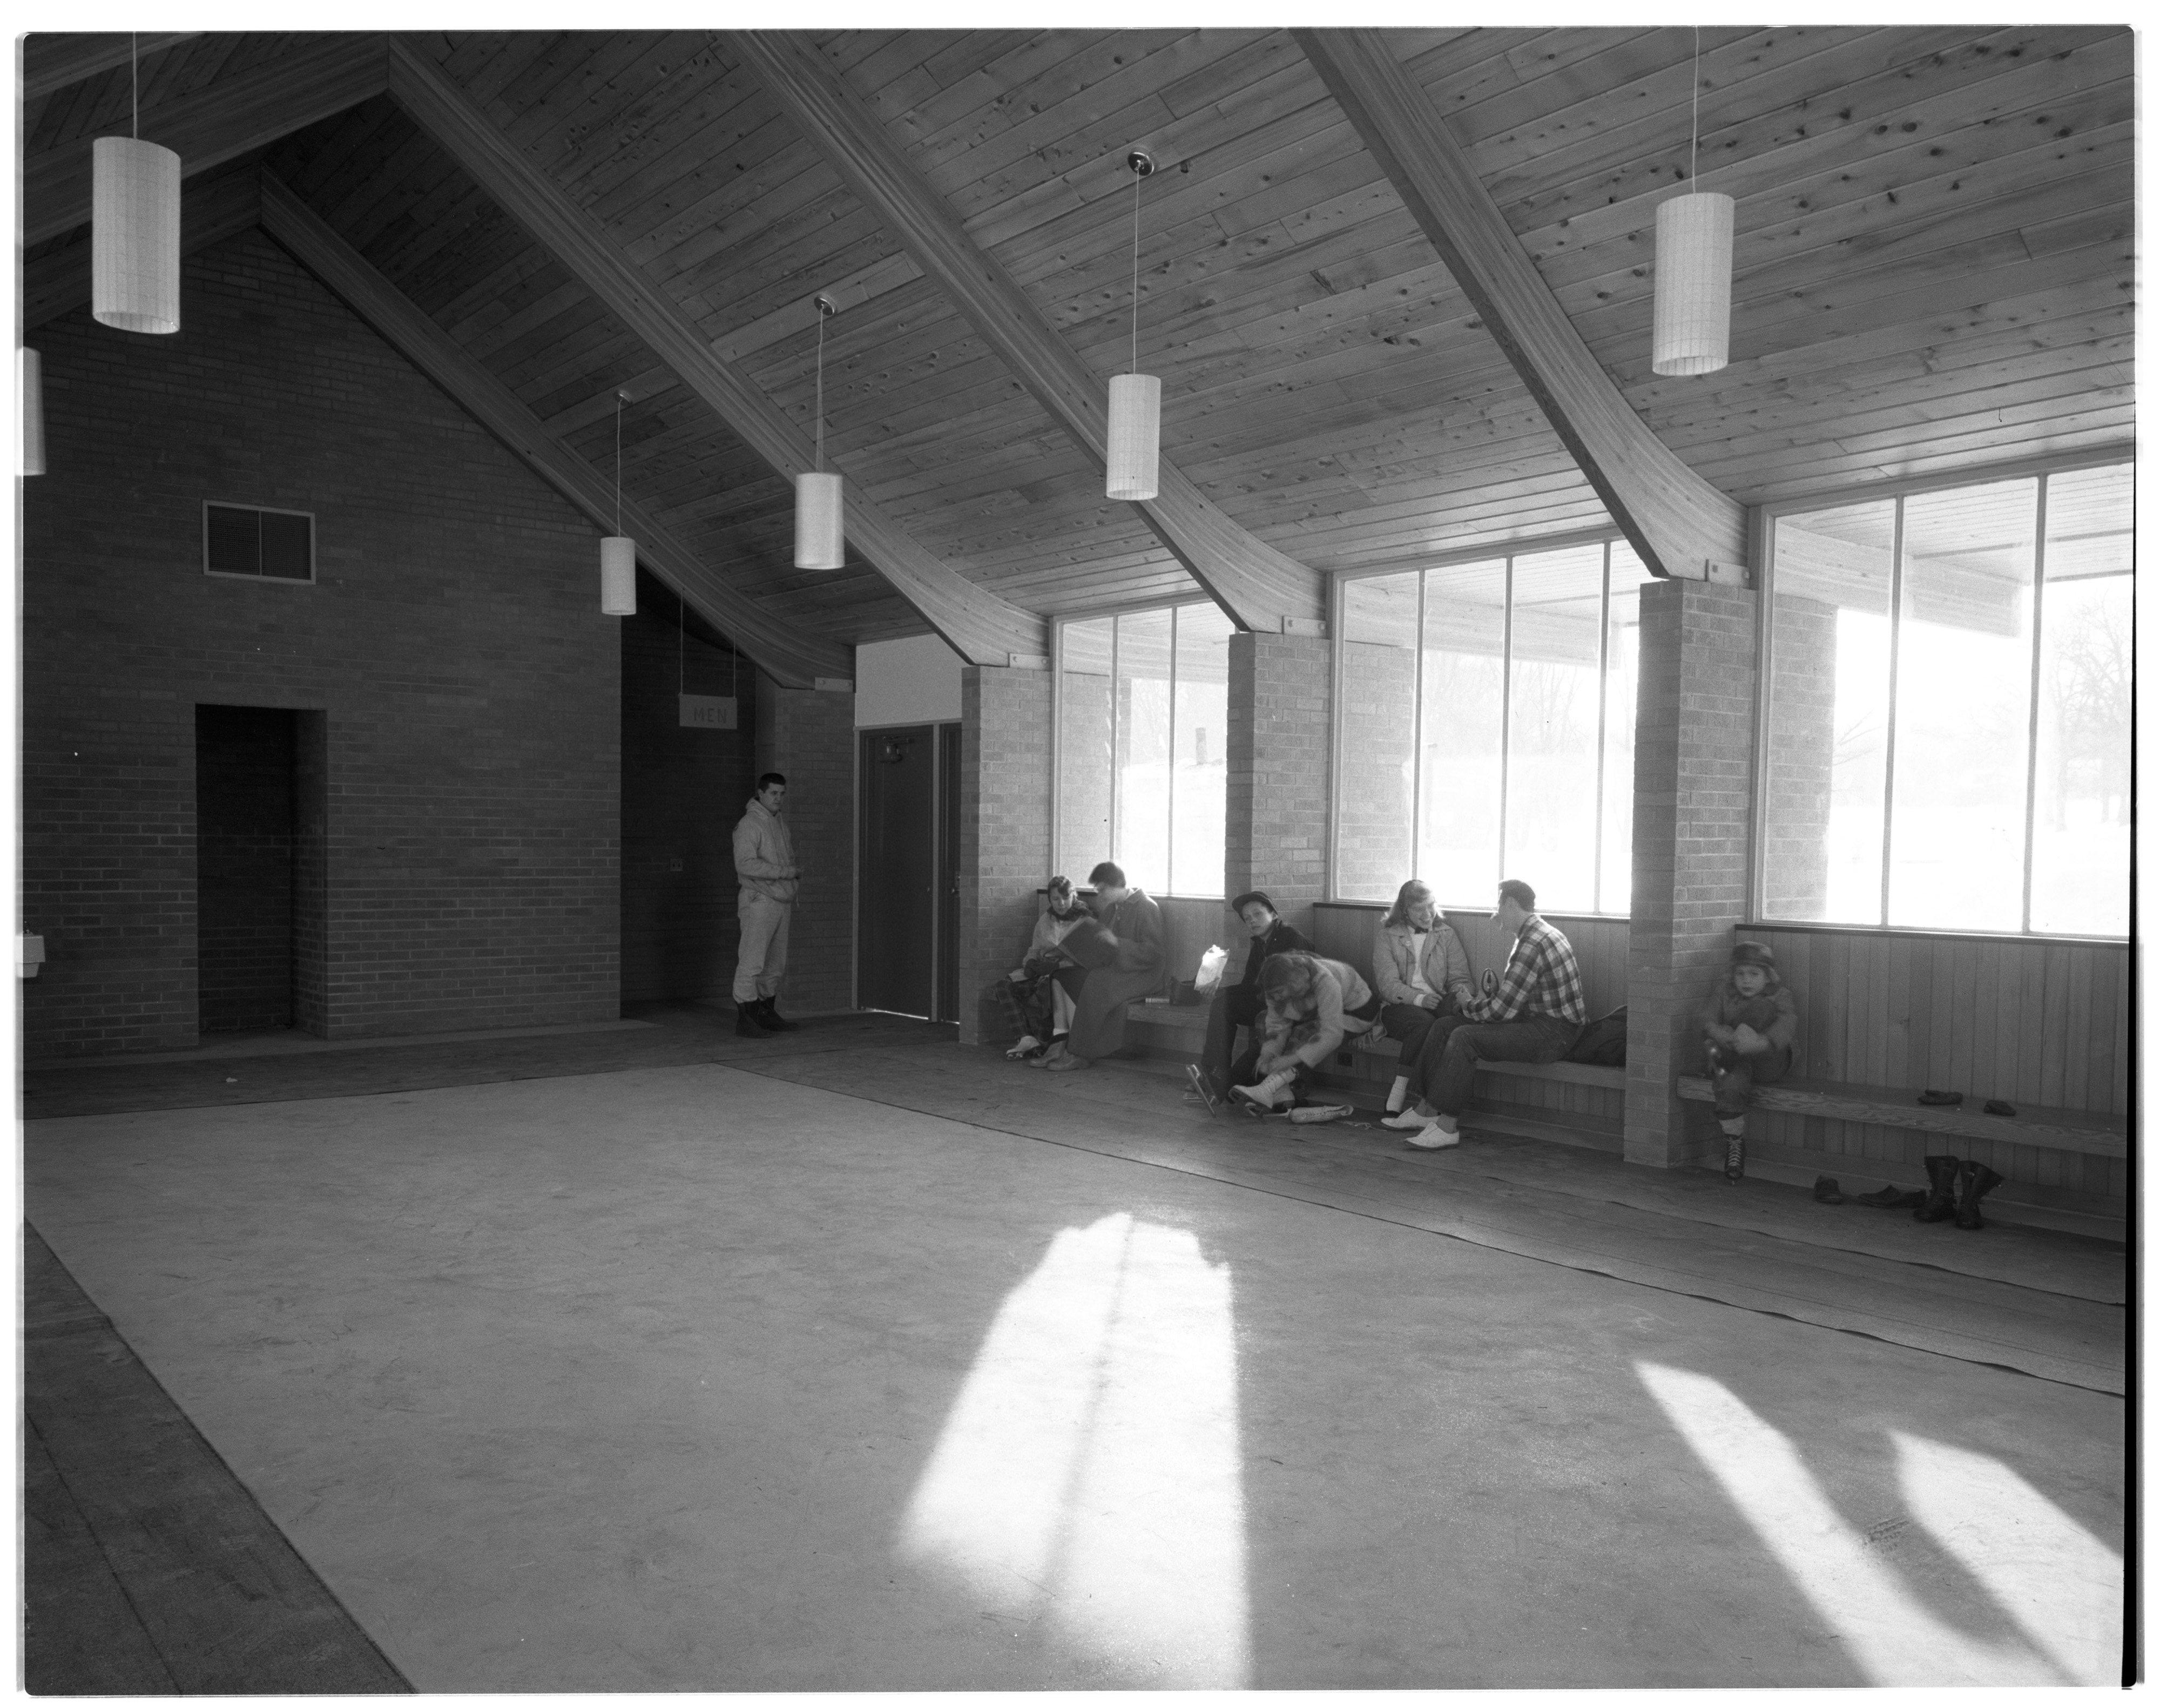 Interior of New Shelter in West Park image